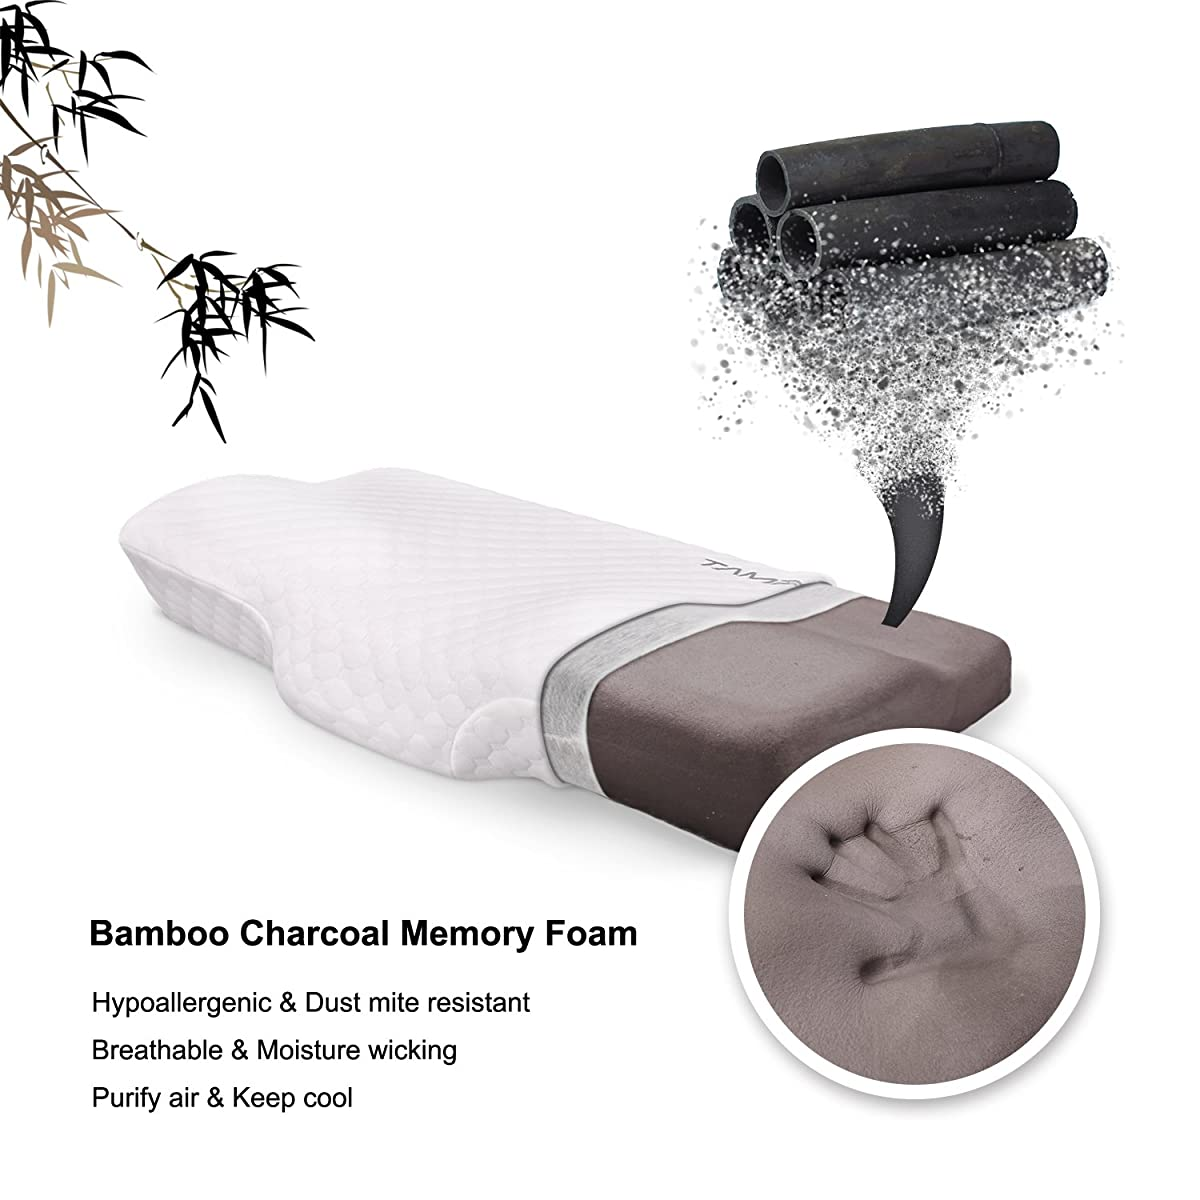 "Memory Foam Pillow Bamboo Charcoal Contour Pillow, Extra Gift Pillow Case, Hypoallergenic Ergonomic Neck Pillow for Neck Support by TAMPOR, Standard 24""x14""x4.3"""